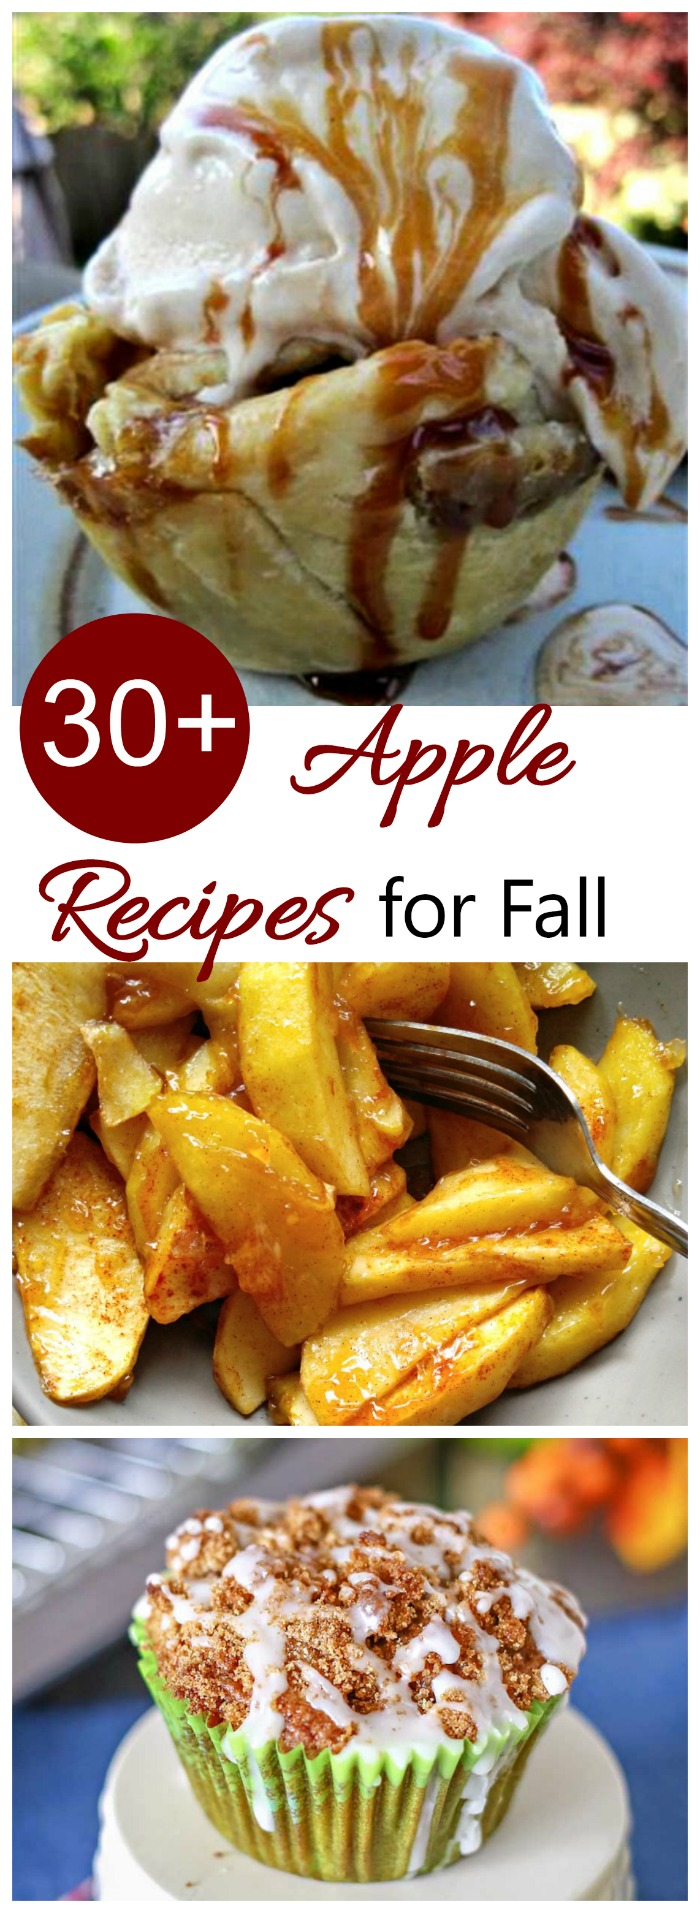 Use the bounty of autumn's apples with one of these 30+ apple recipes. From side dishes, to main courses and desserts, we have you covered. #applerecipes #fallrecipes